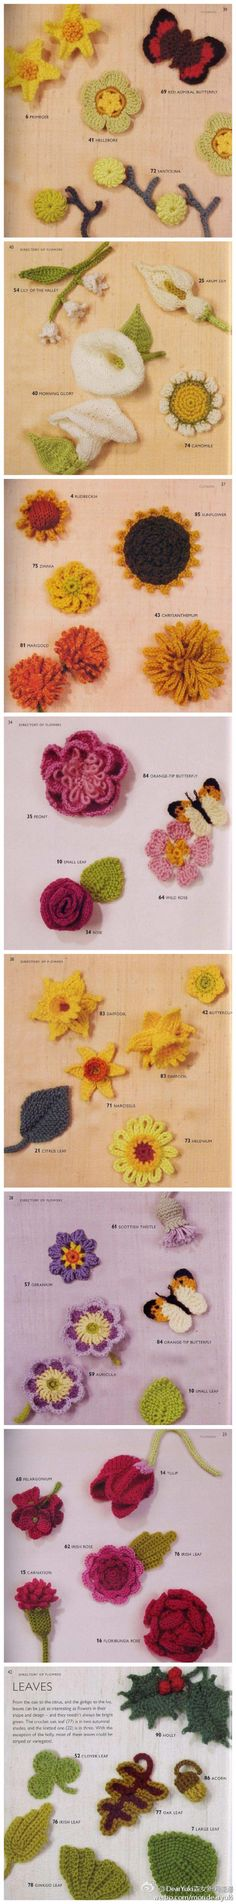 flowers - tons of flowers crocheted, looks almost real, butterflies too